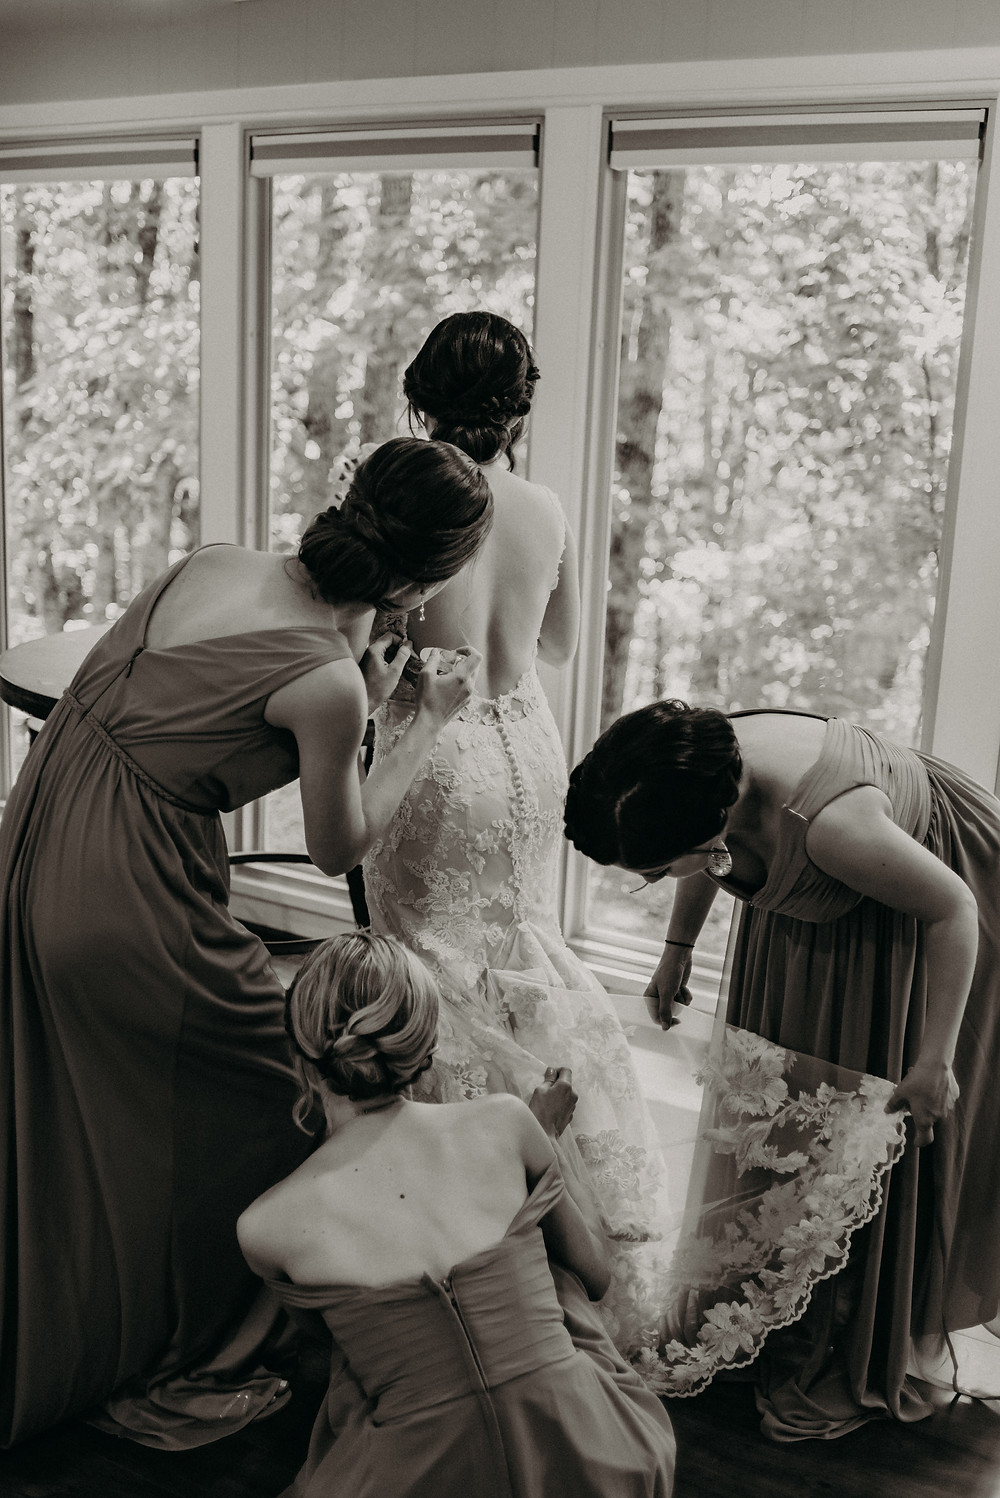 Black and white photo of bride getting ready for the wedding with her bridesmaids